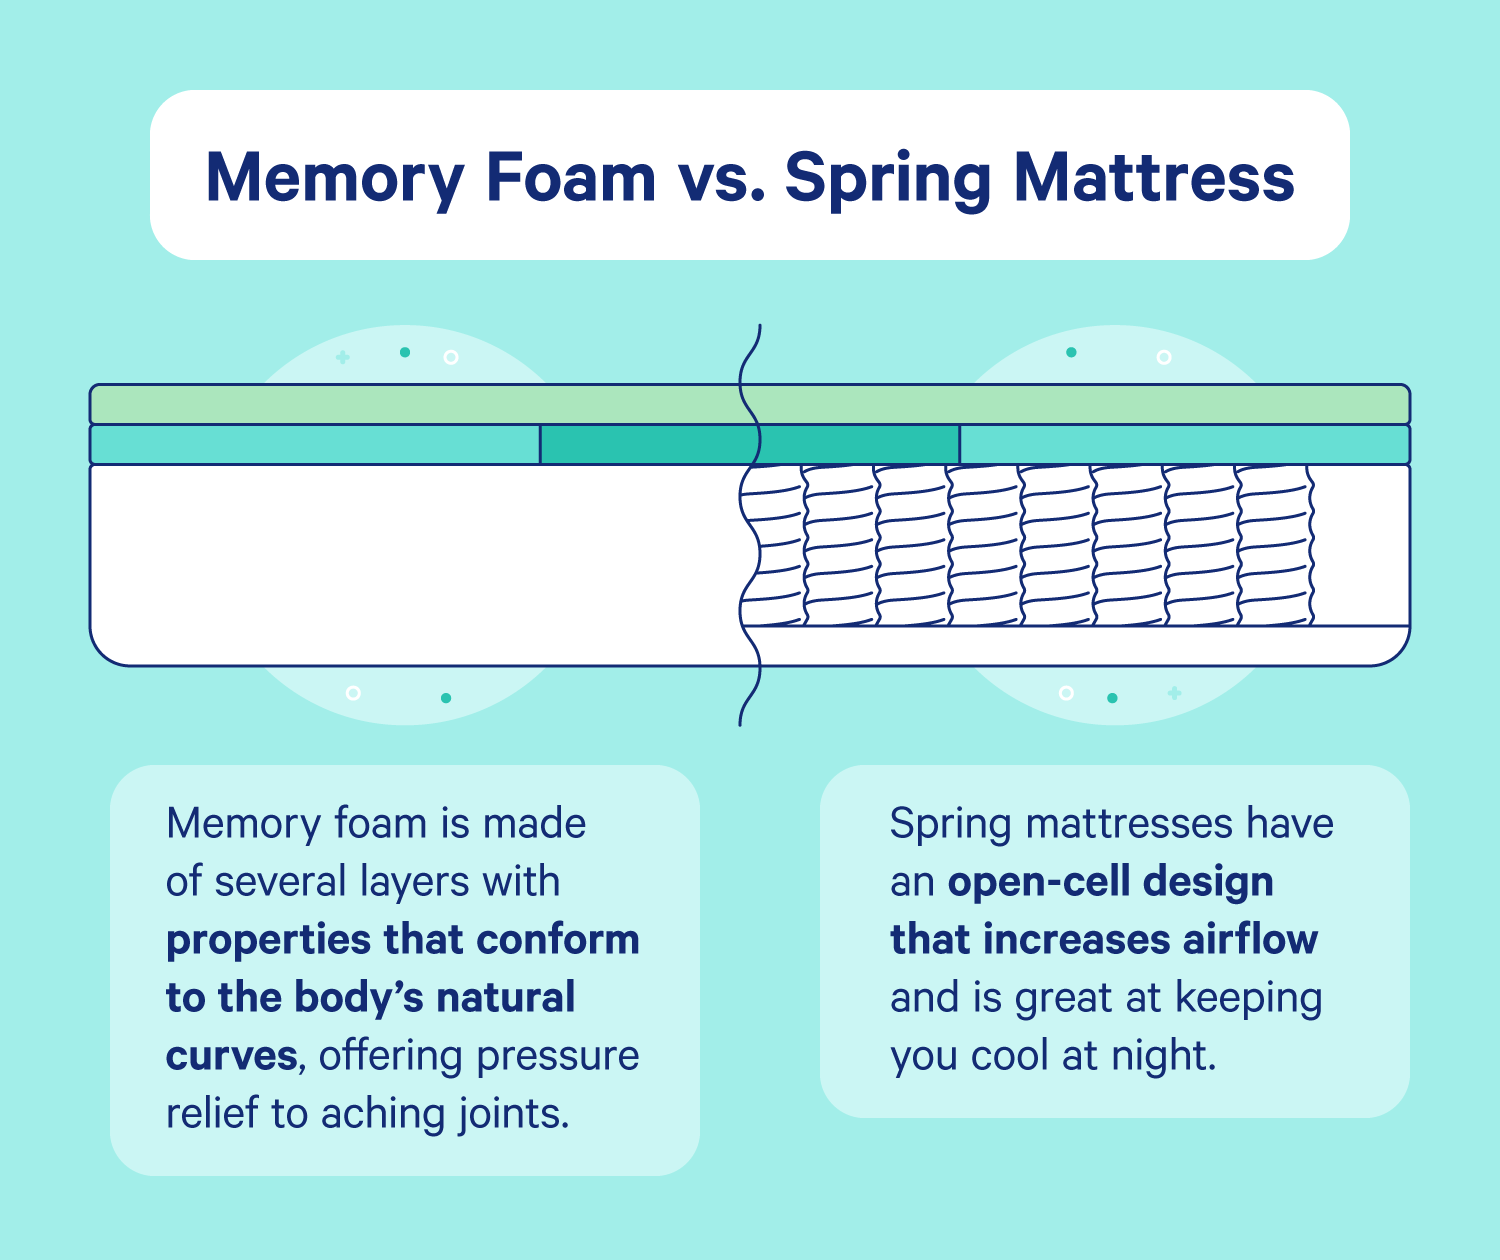 Side-by-side comparison of a memory foam and spring mattress